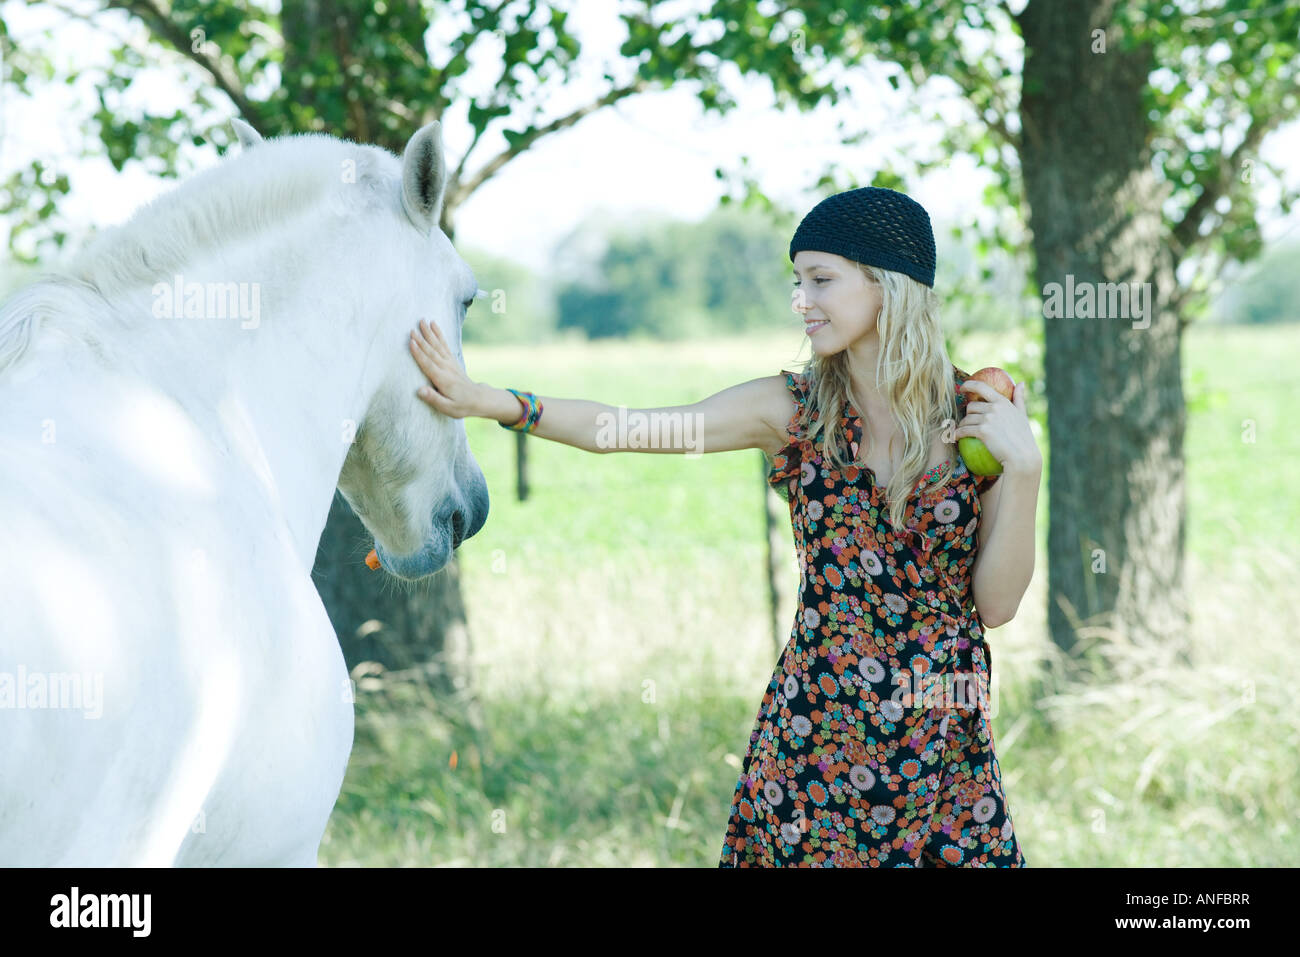 Young woman touching horse, holding apples - Stock Image